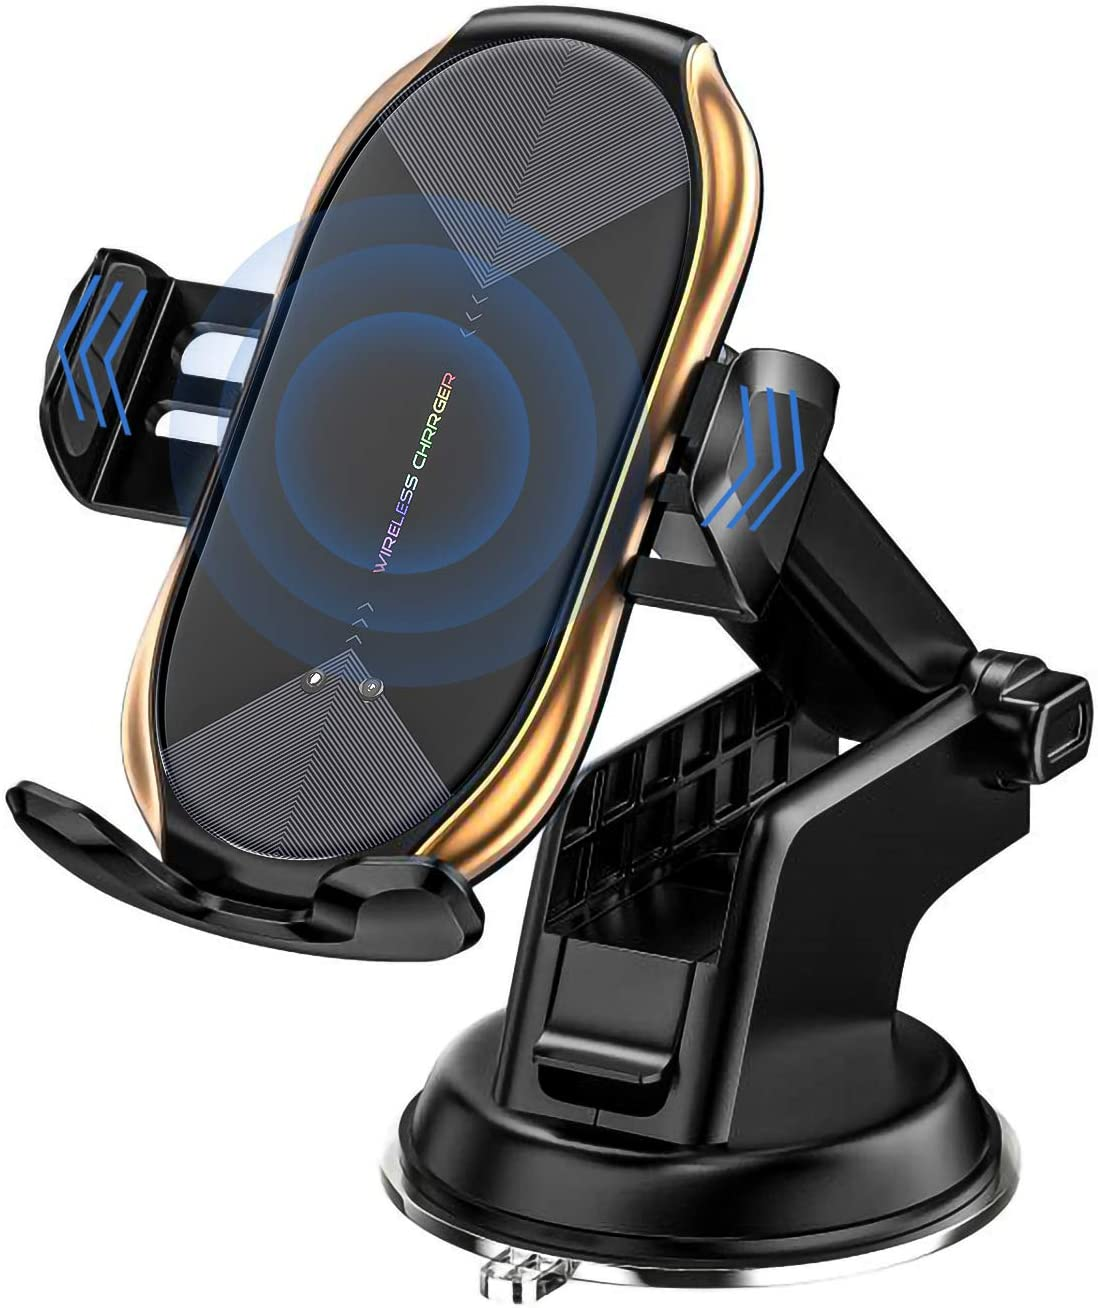 Wireless Car Charger Mount, Auto-Clamping Qi 10W 7.5W Fast Charging Car Phone Holder Air Vent Compatible withiPhone11/11Pro/11ProMax/XSMax/XS/X/8/8+ Samsung S10/S10+/S9/S9+/S8/S8+/Note (Golden)